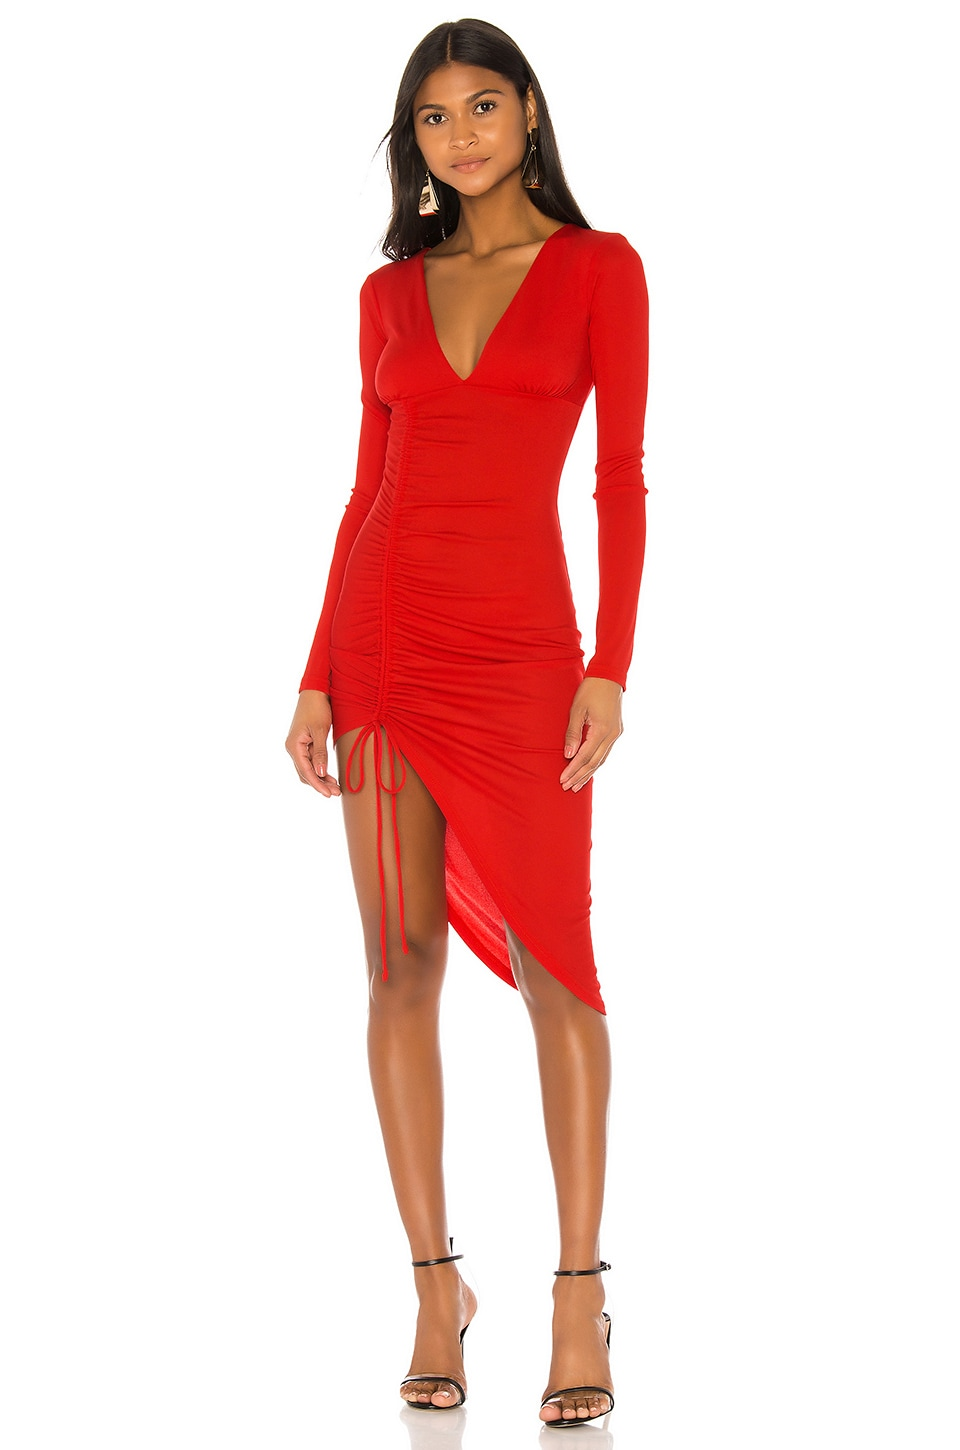 h:ours Cherish Midi Dress in Hot Red